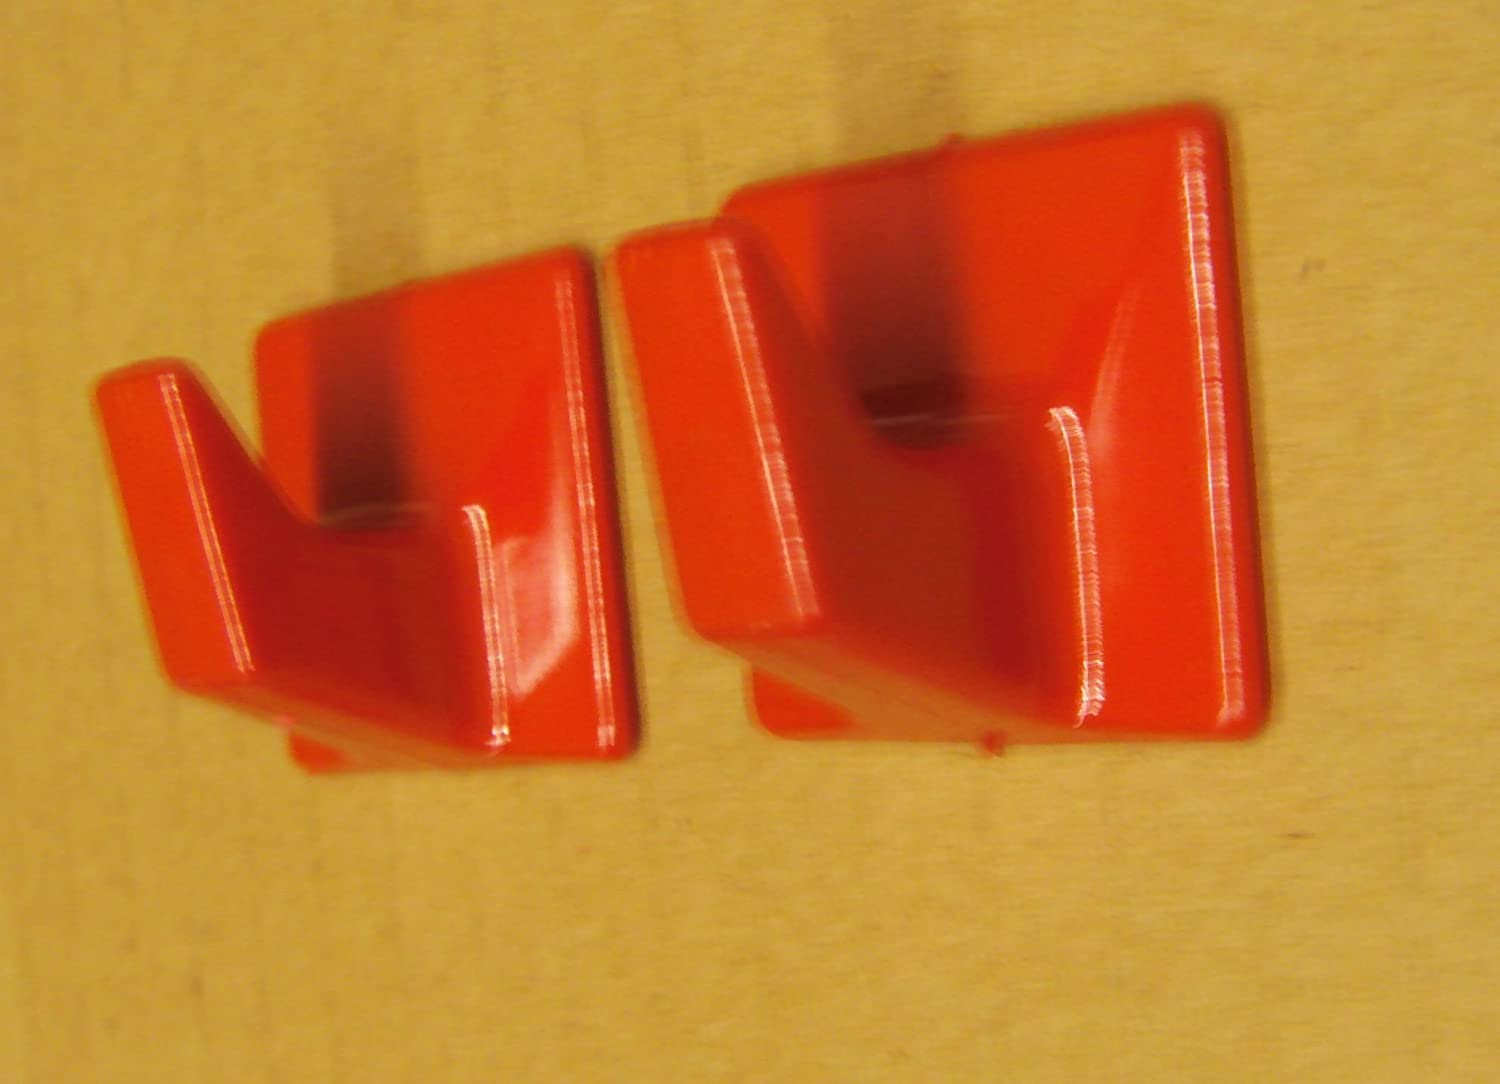 SS52 Small Square Ideal For Tube or Slat Type Blind//Fly Curtain//Strip Blind Self Adhesive Hooks Holland Plastics Original Brand Red